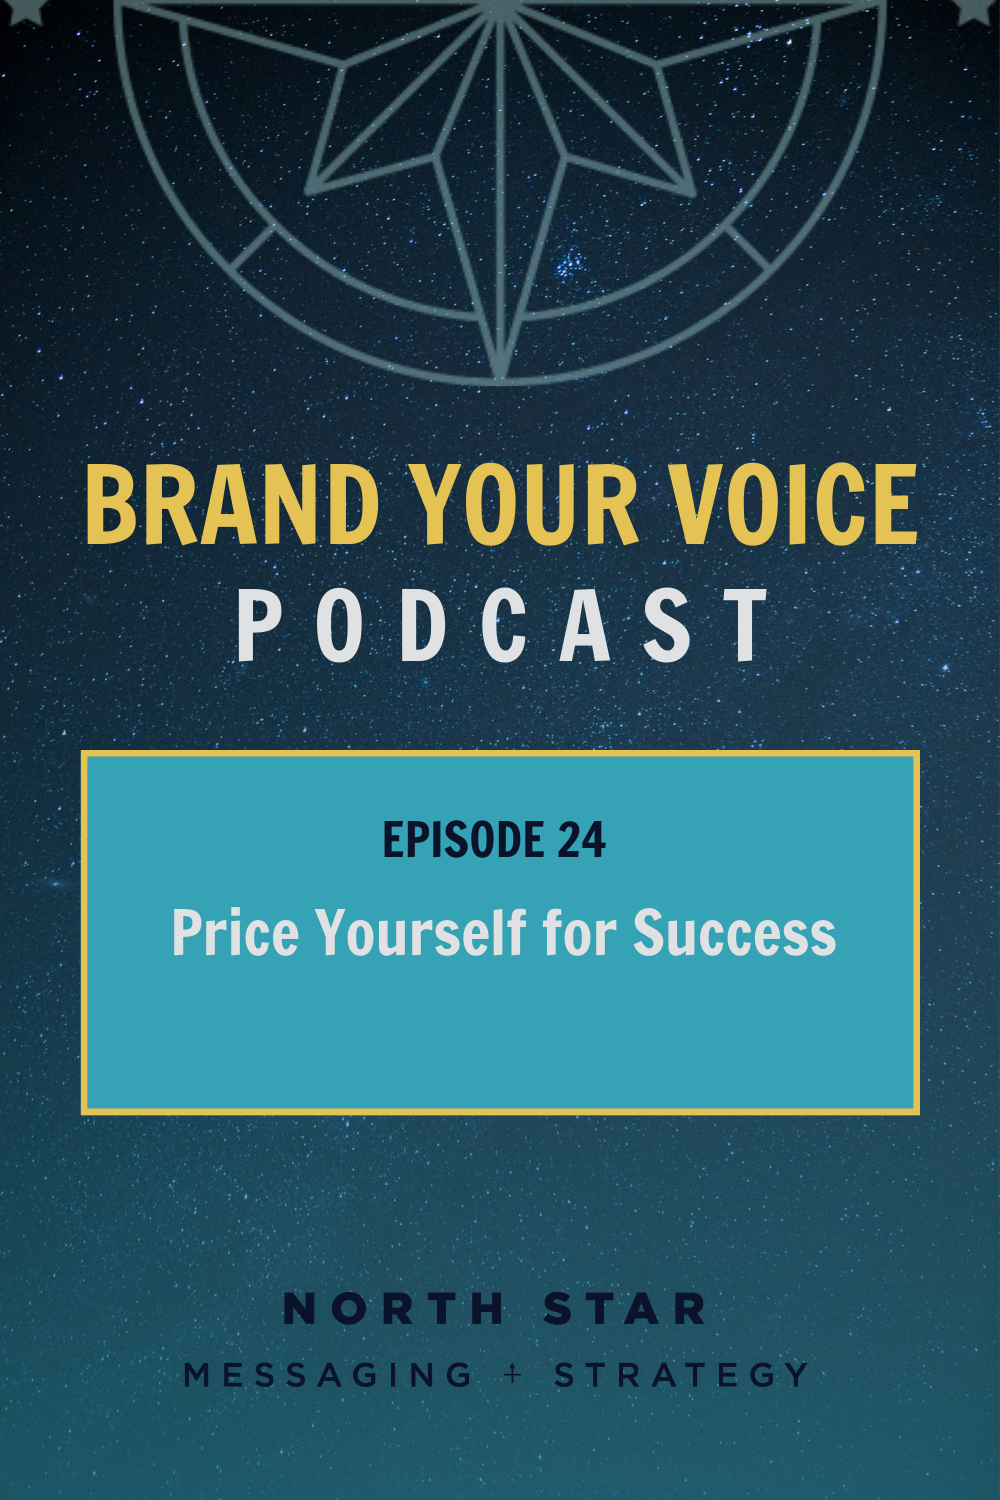 EPISODE 24: Price Yourself for Success